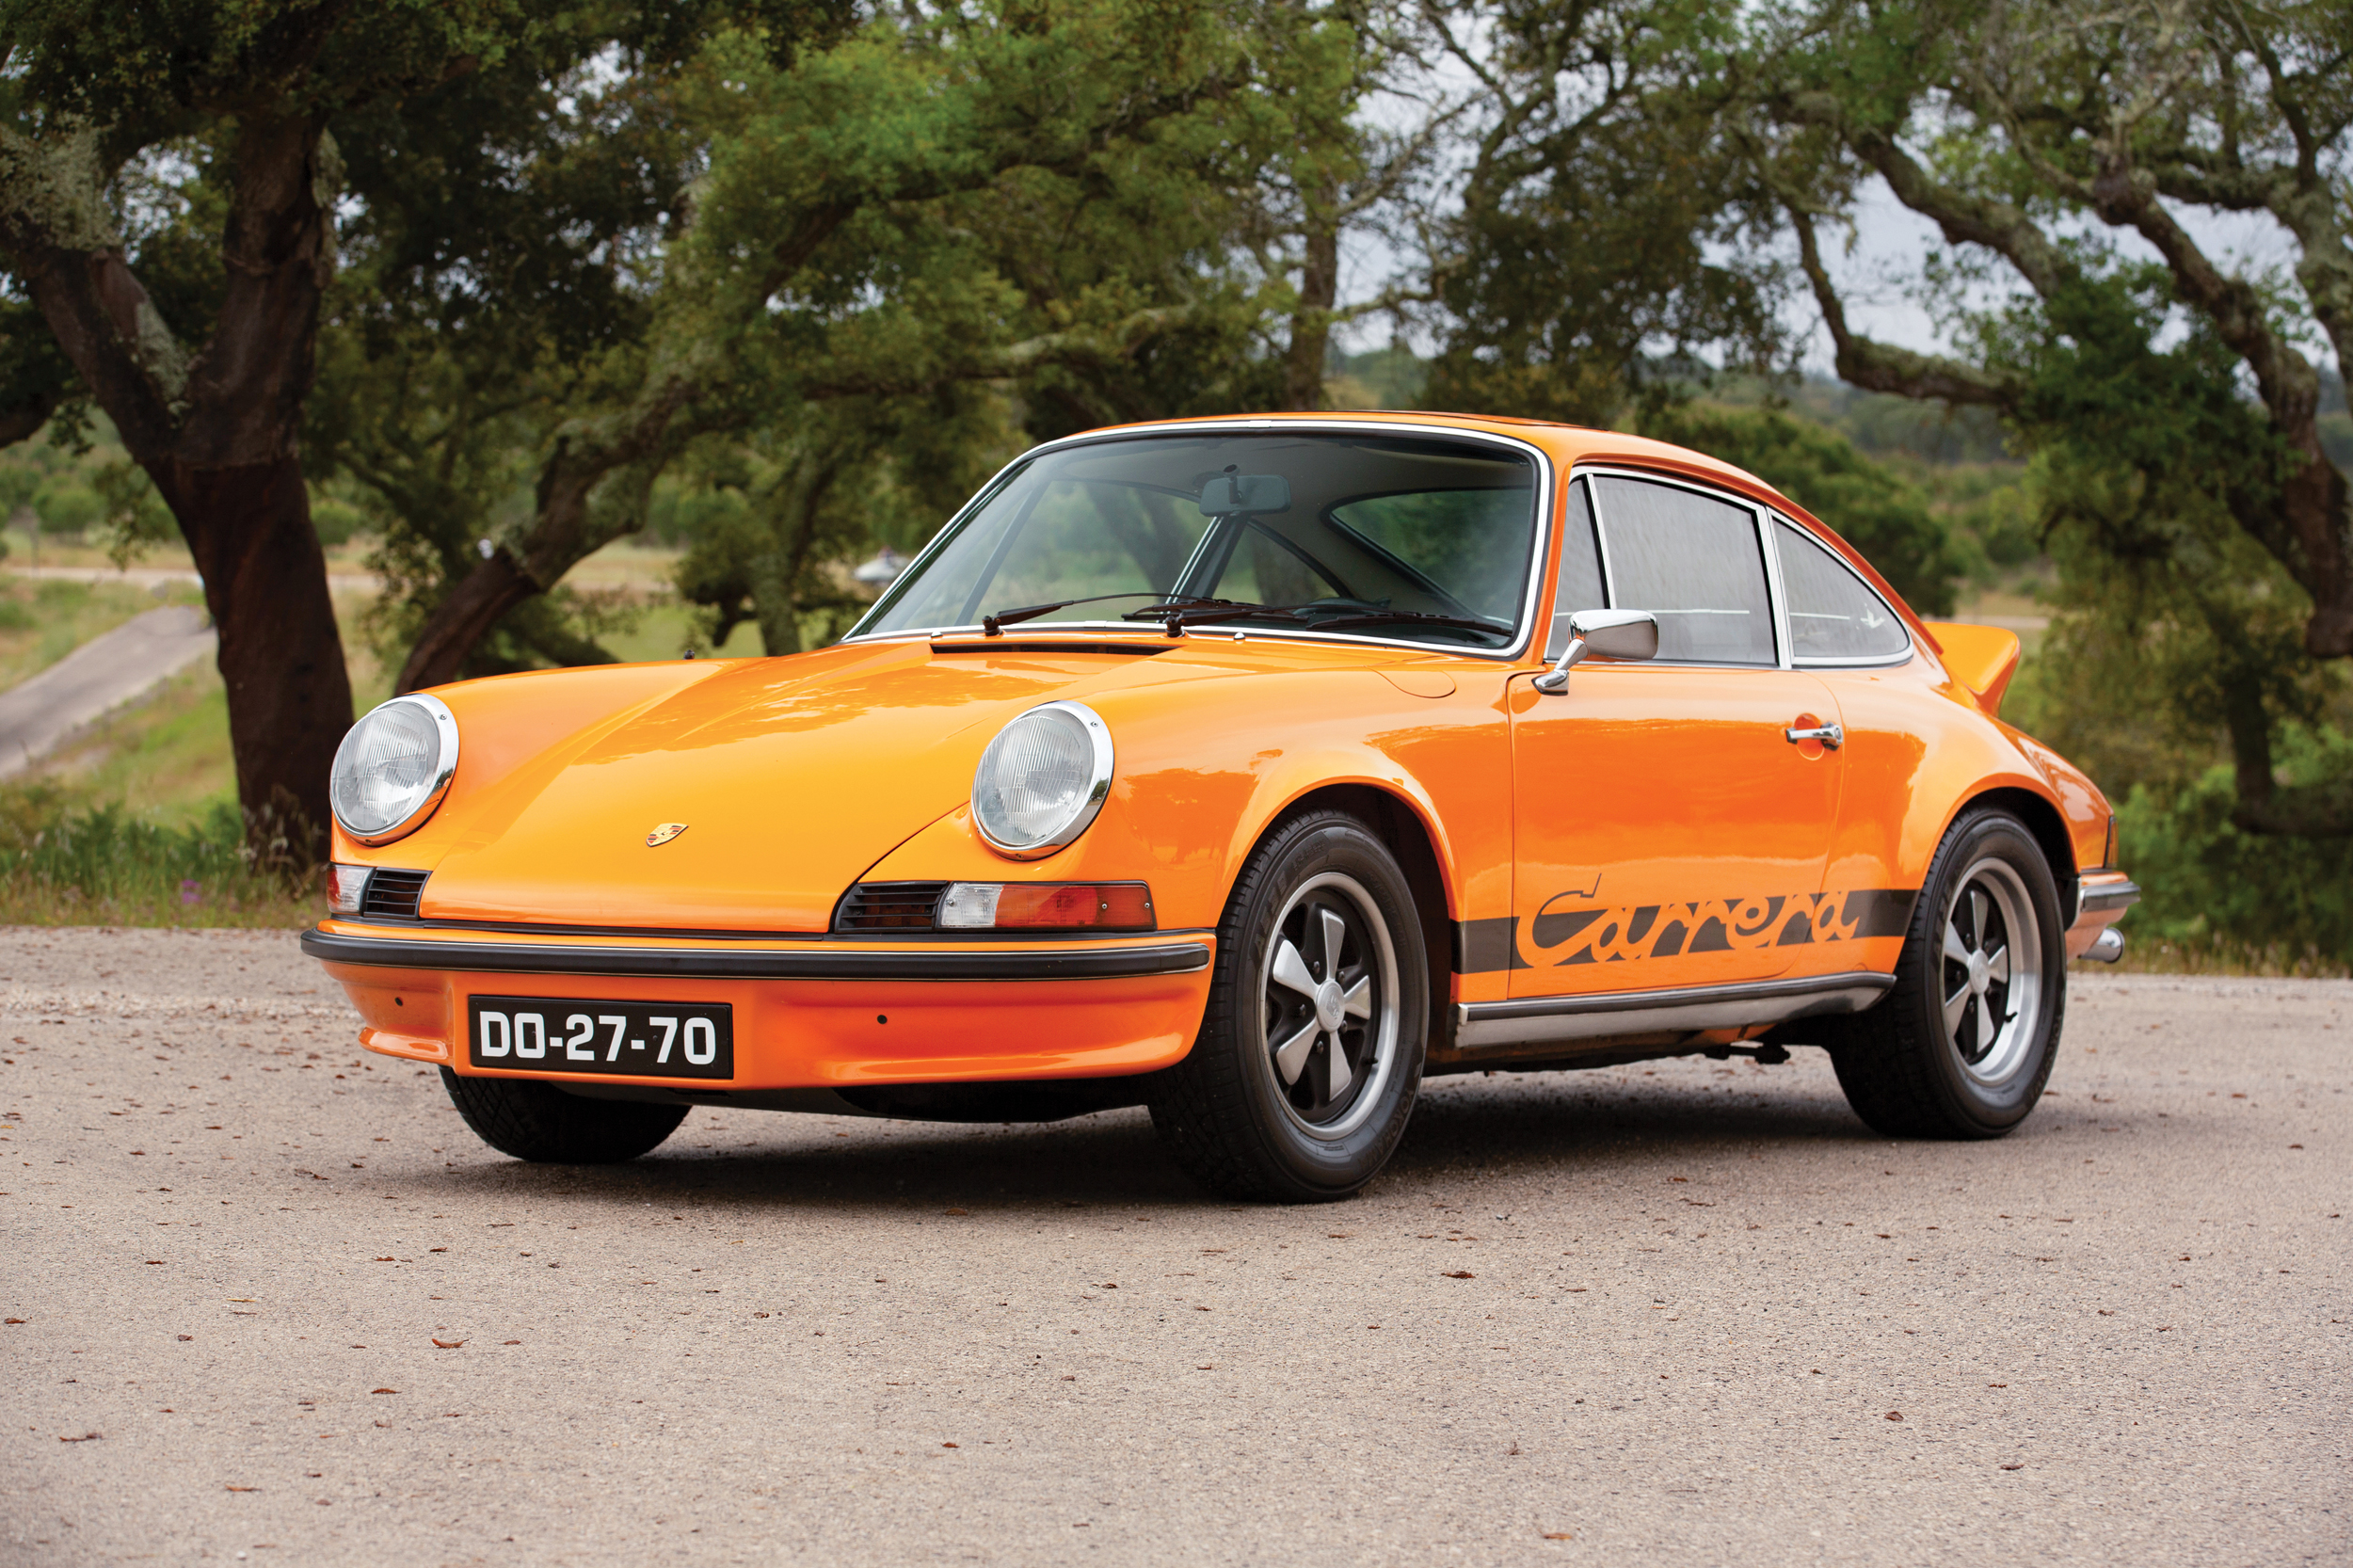 Sarragga Collection - 1973 Porsche 911 Carrera RS 2.7 Touring (Tom Gidden © 2019 Courtesy of RM Sotheby's) [3]